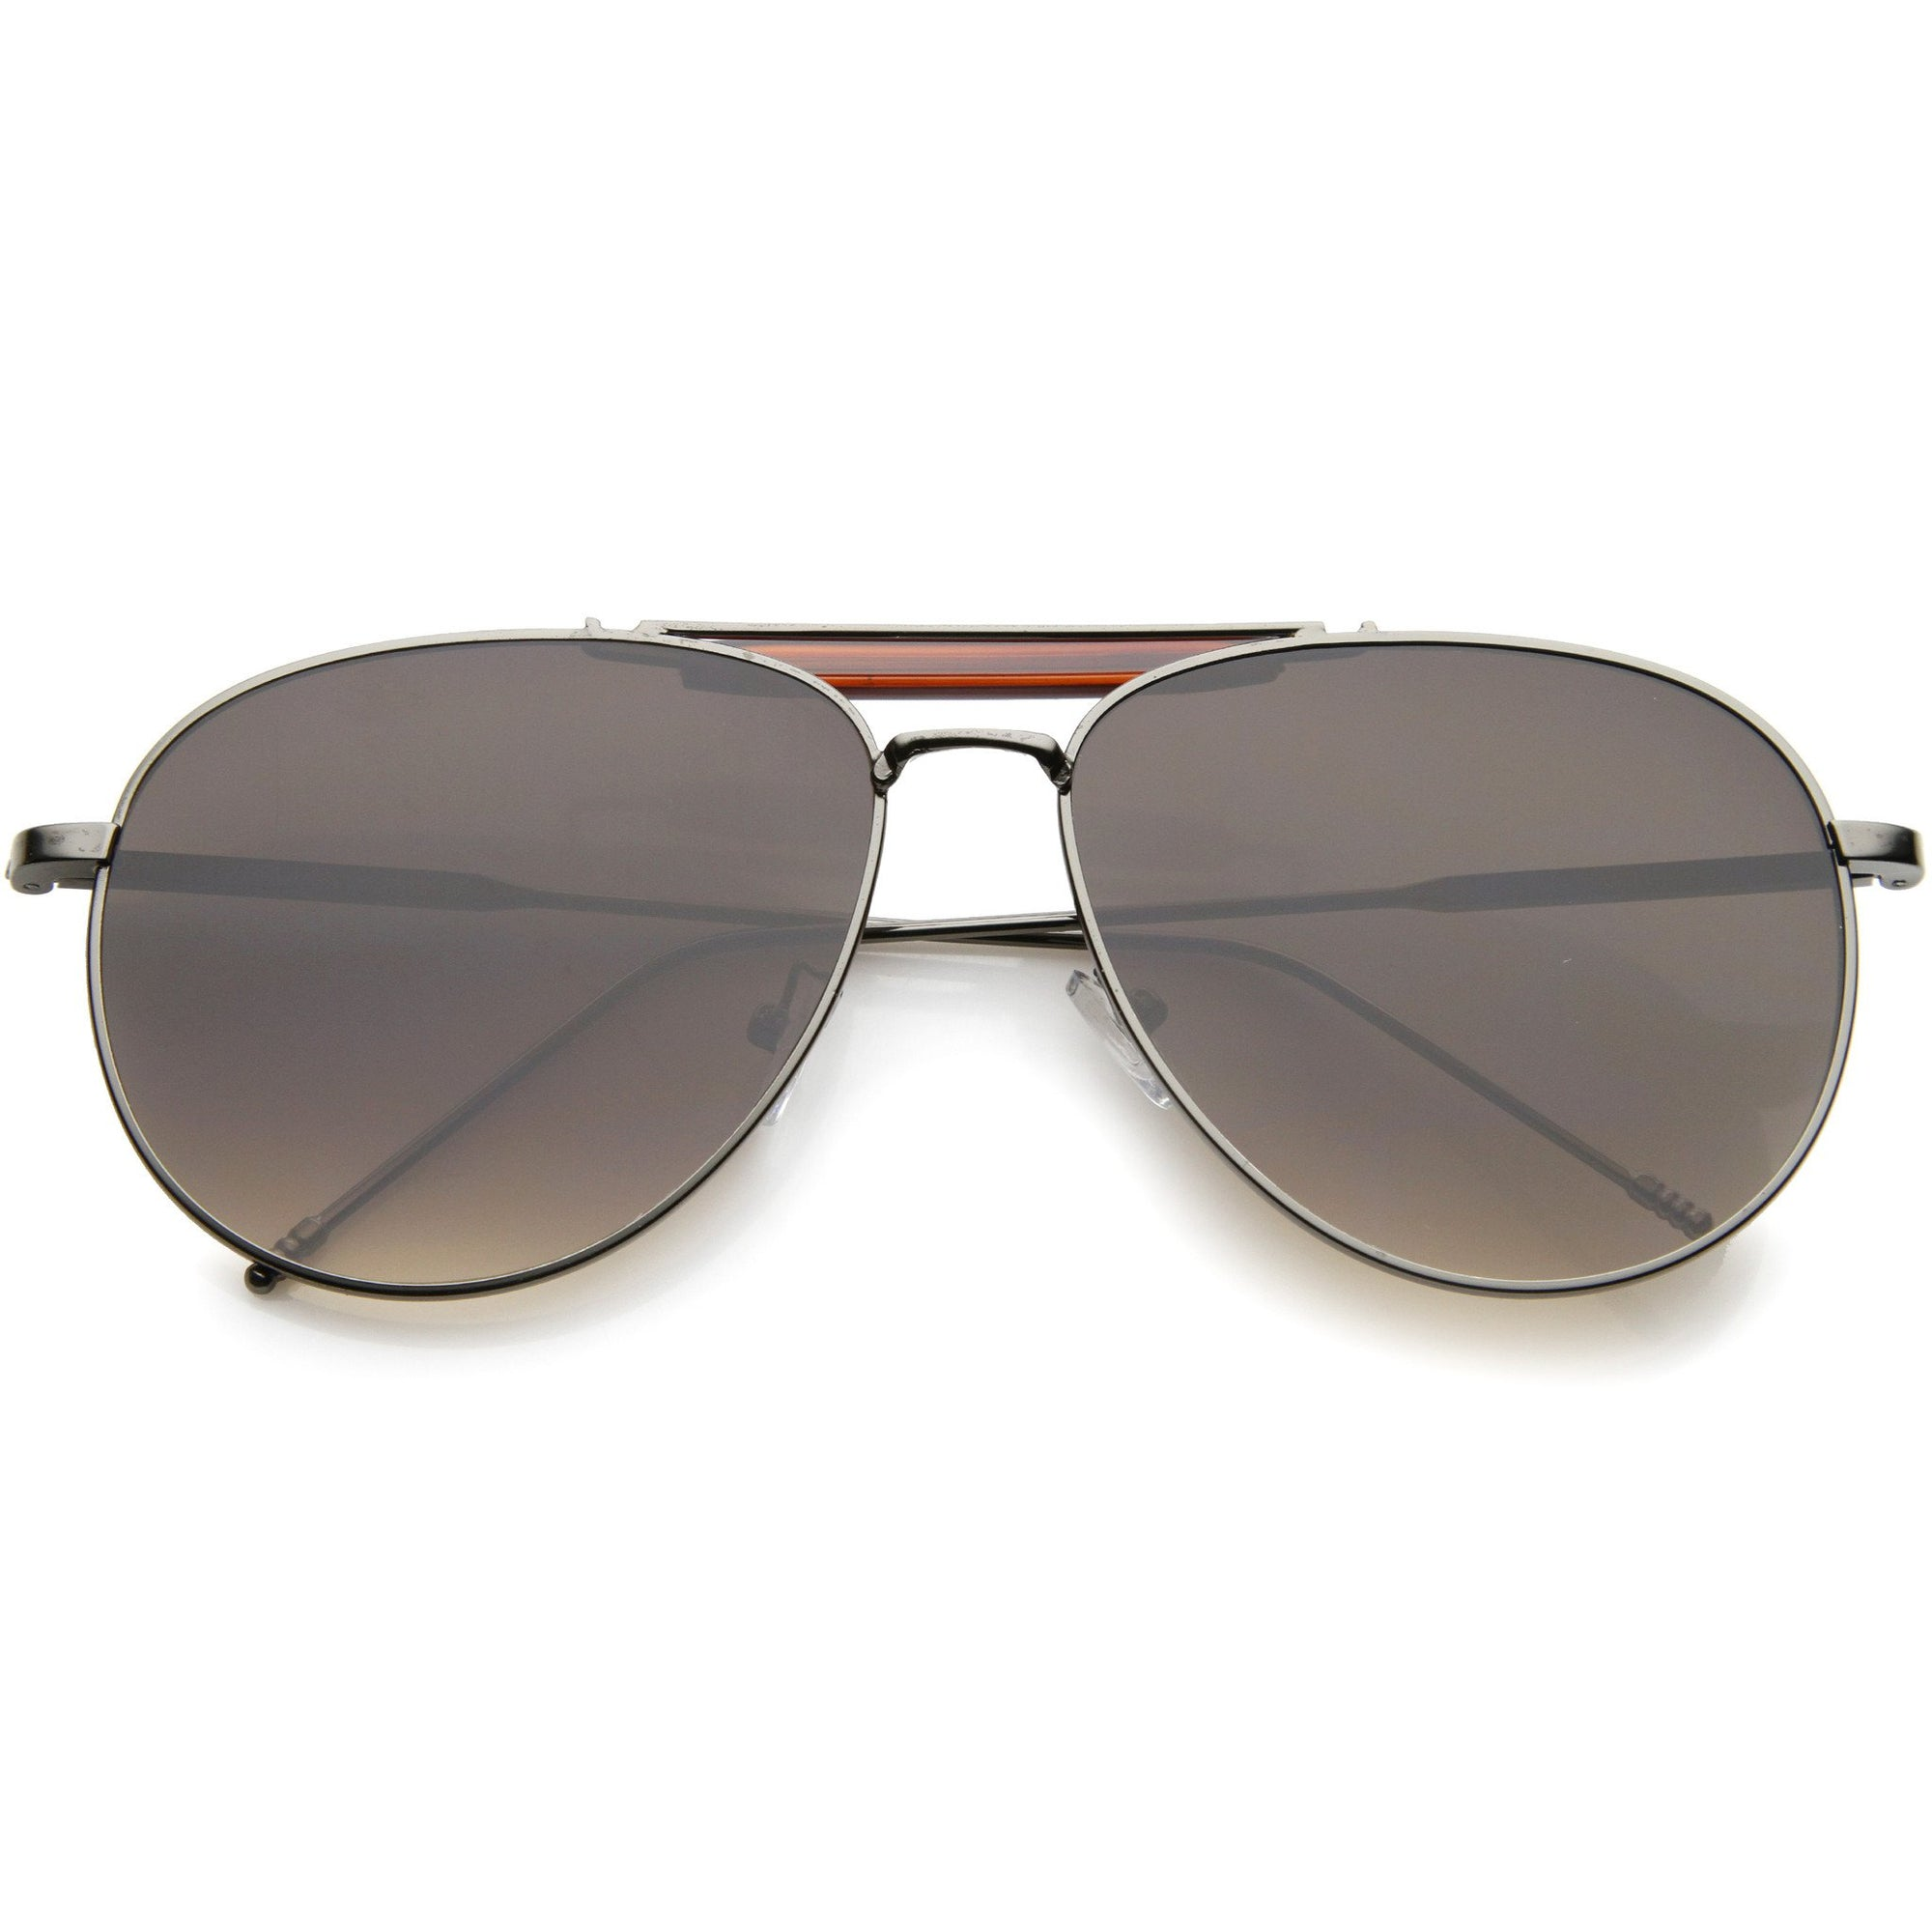 1eb7f771706 Modern Fashion Top Bar Flat Lens Aviator Sunglasses A212 · Gunmetal Brown  Lavender